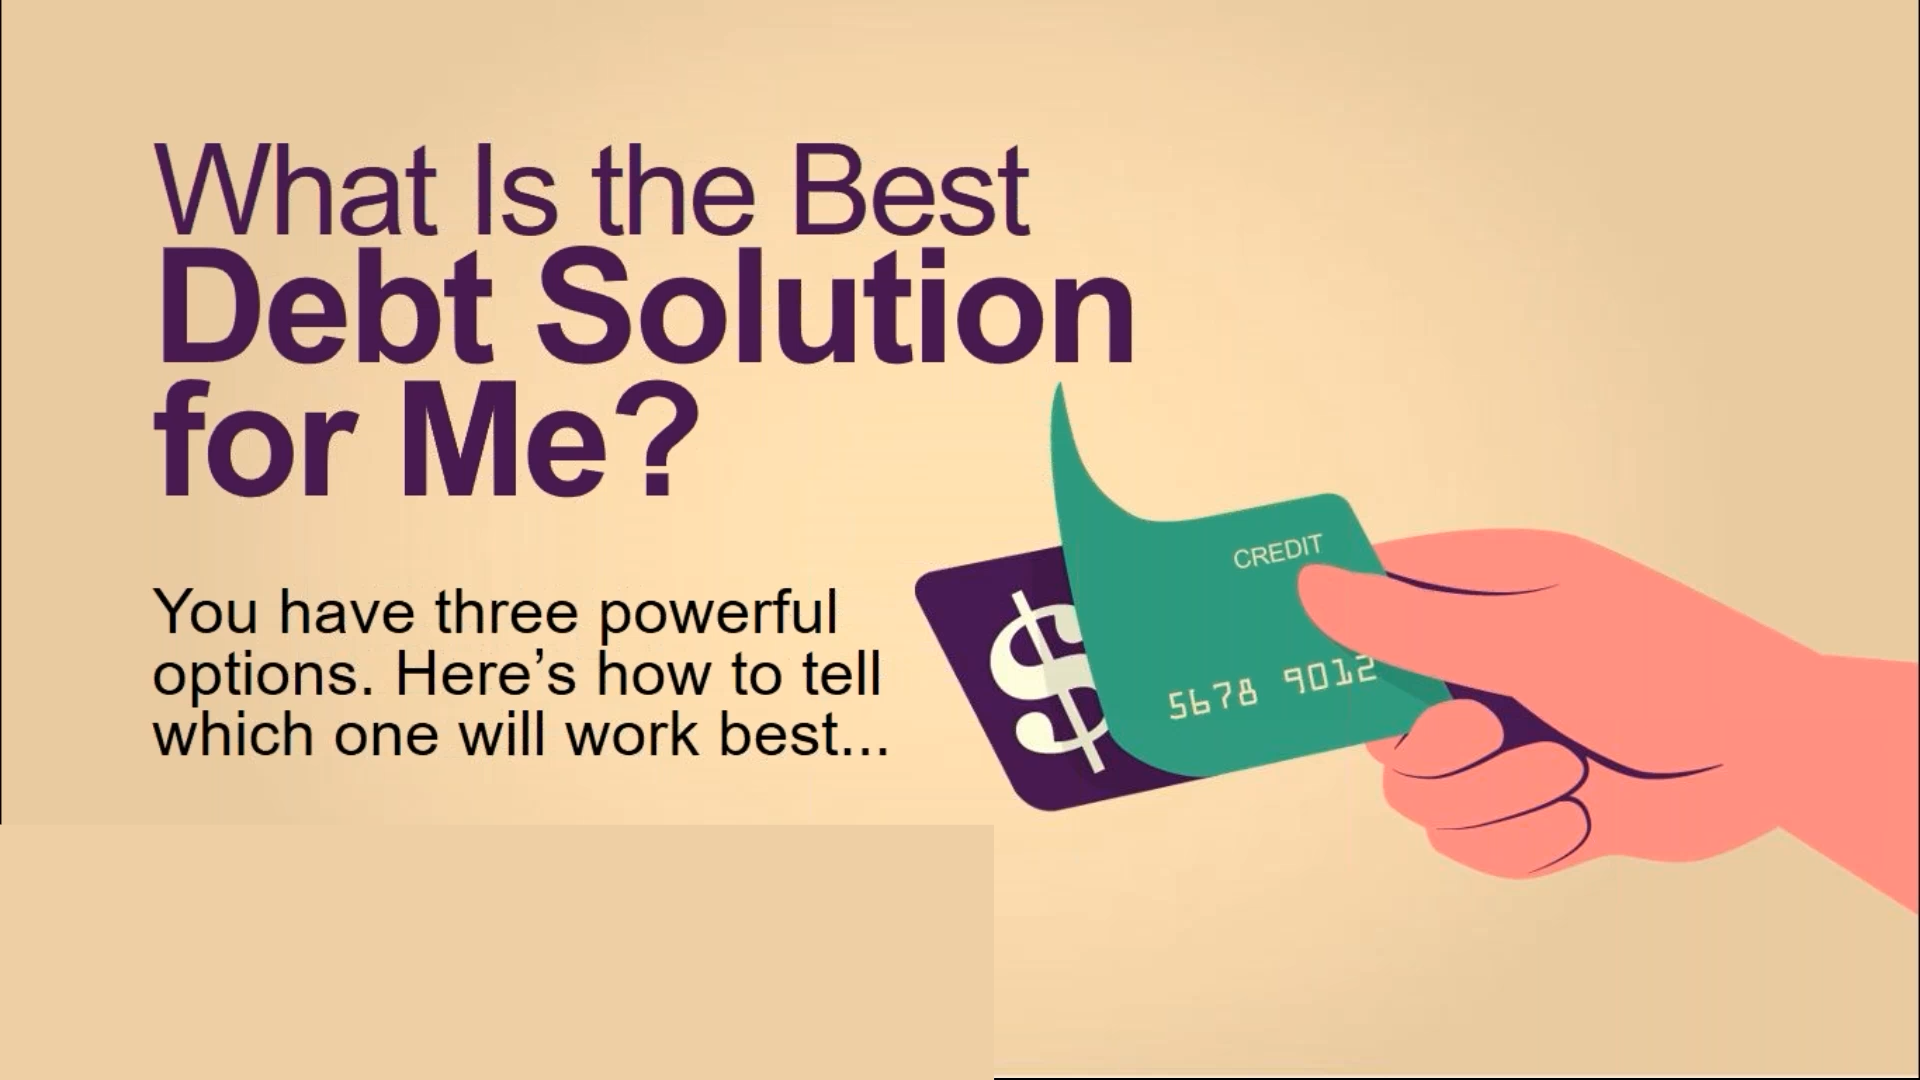 What Is the Best Debt Solution for Me? You have three powerful options. Here's how to tell which one will work best...